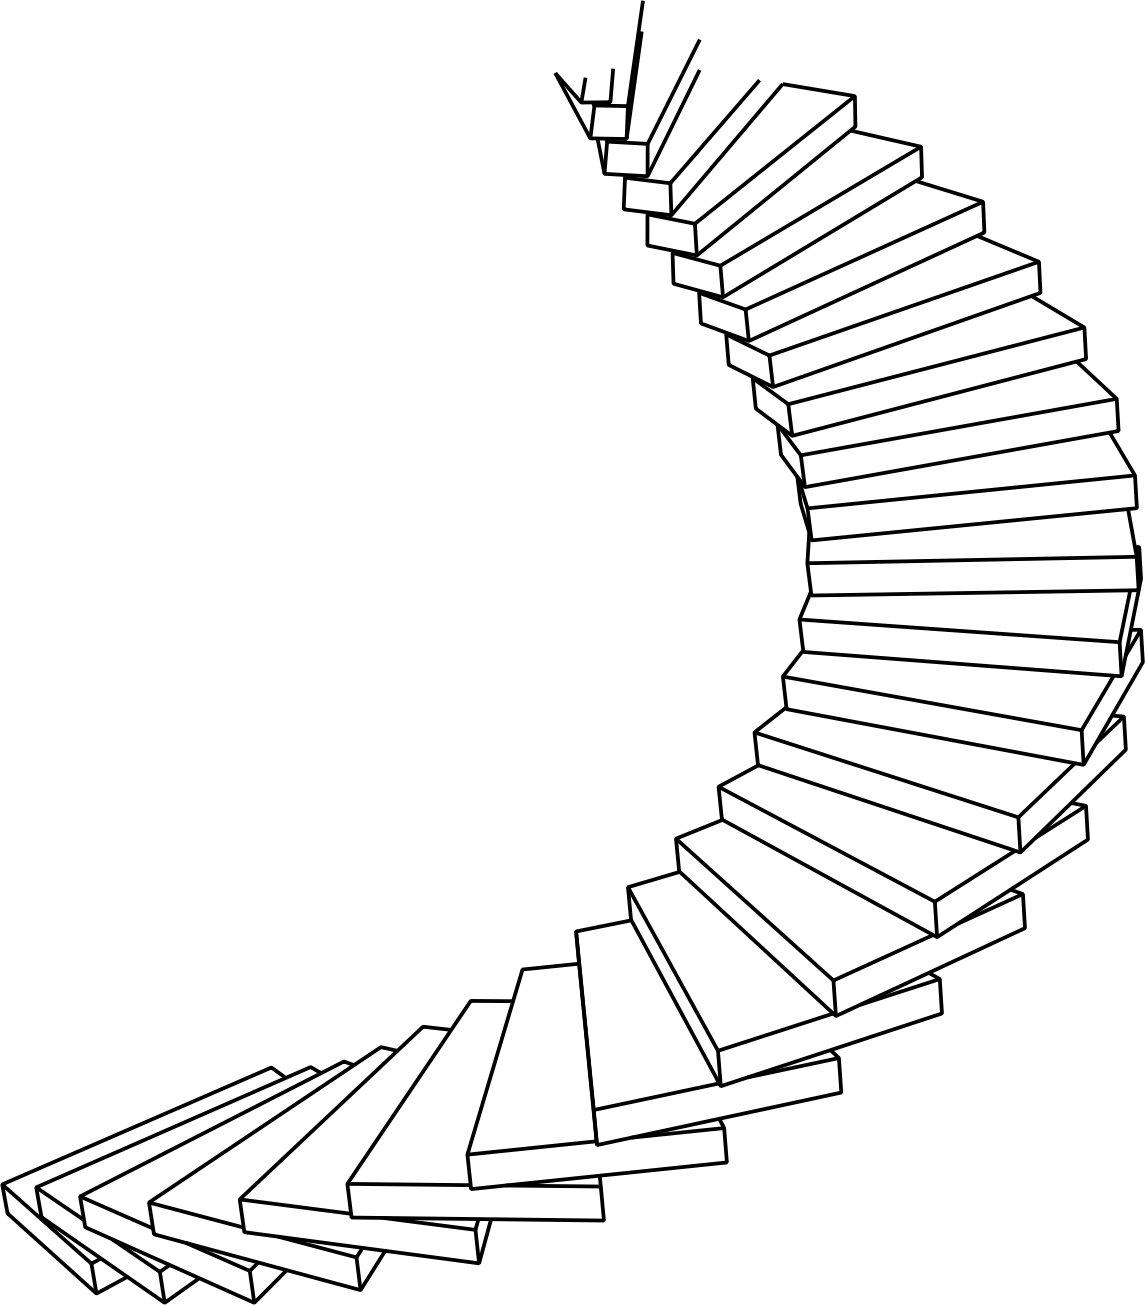 Ladder Clipart Line Drawing Ladder Line Drawing